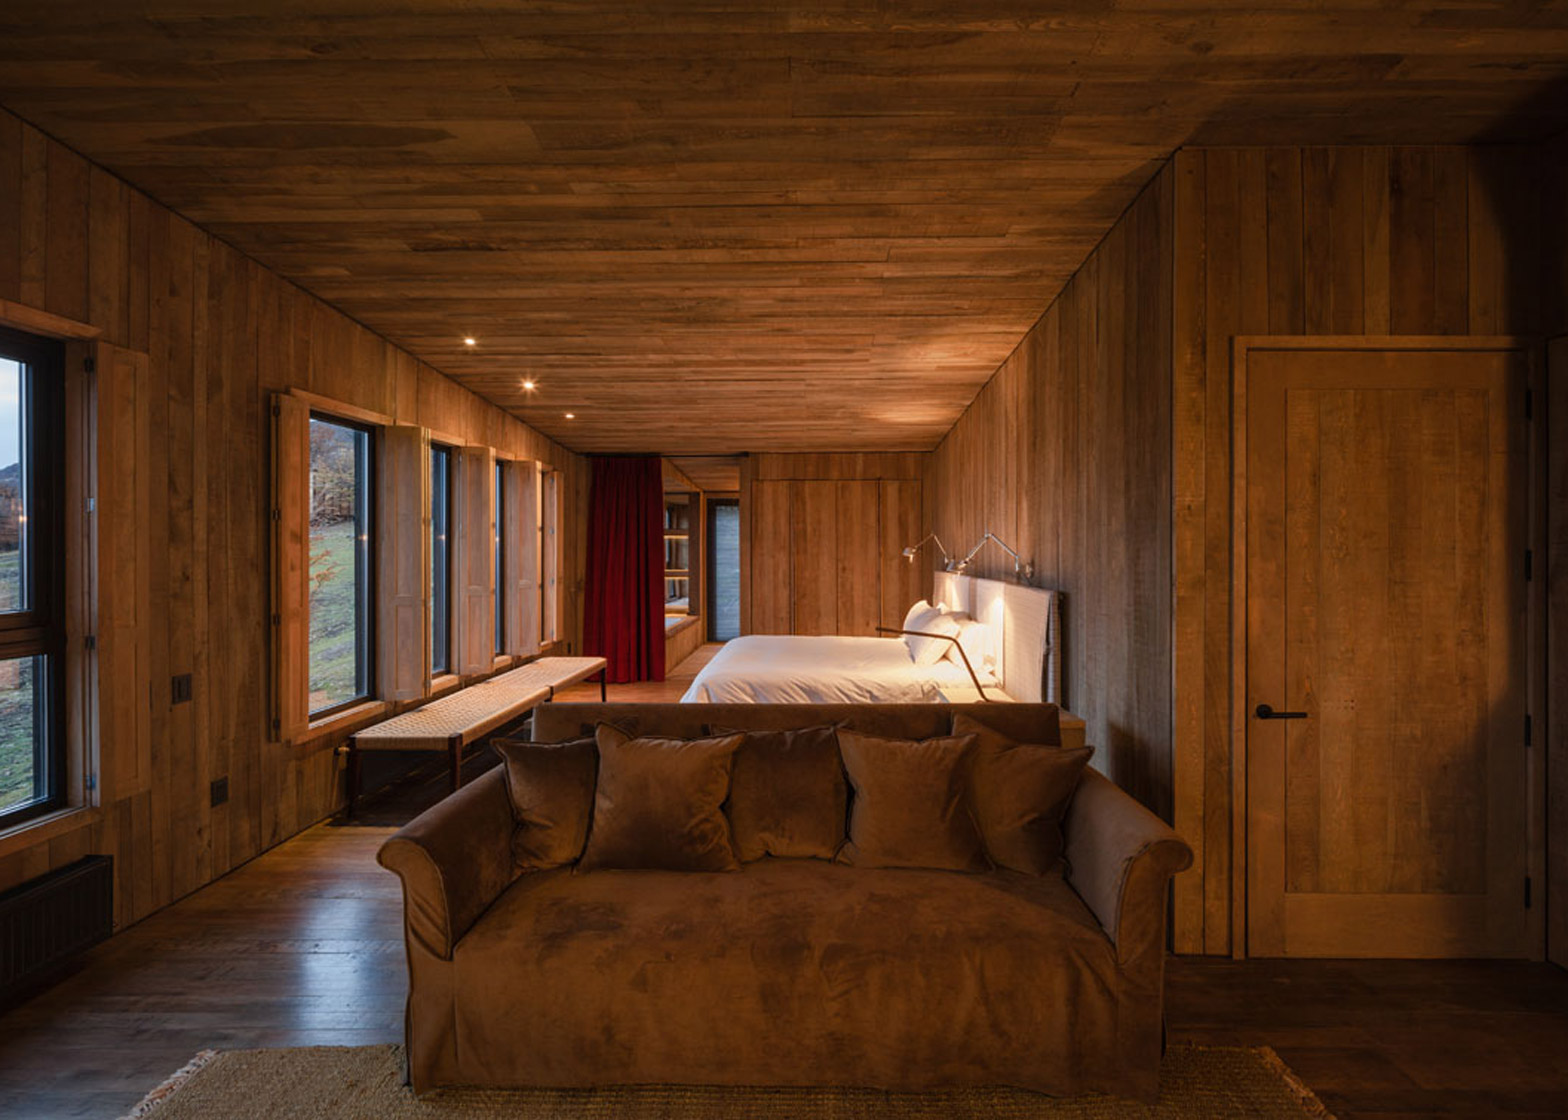 Timber Cabin Hotel Offers Beautiful Views Over The Chilean